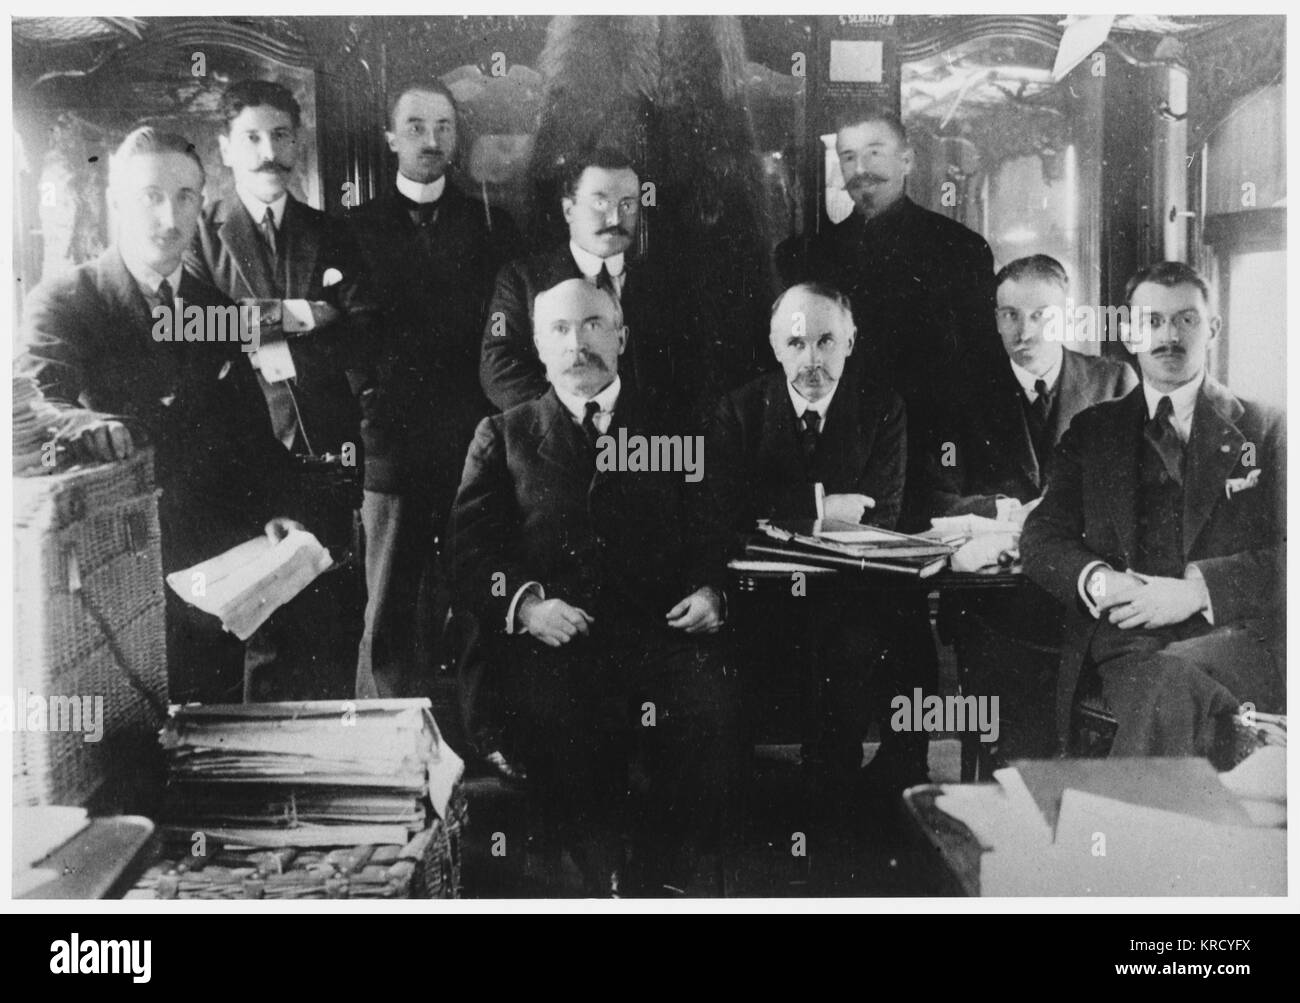 French embassy staff prudently  assemble in a railway carriage  for greater security ...        Date: 1918 - Stock Image